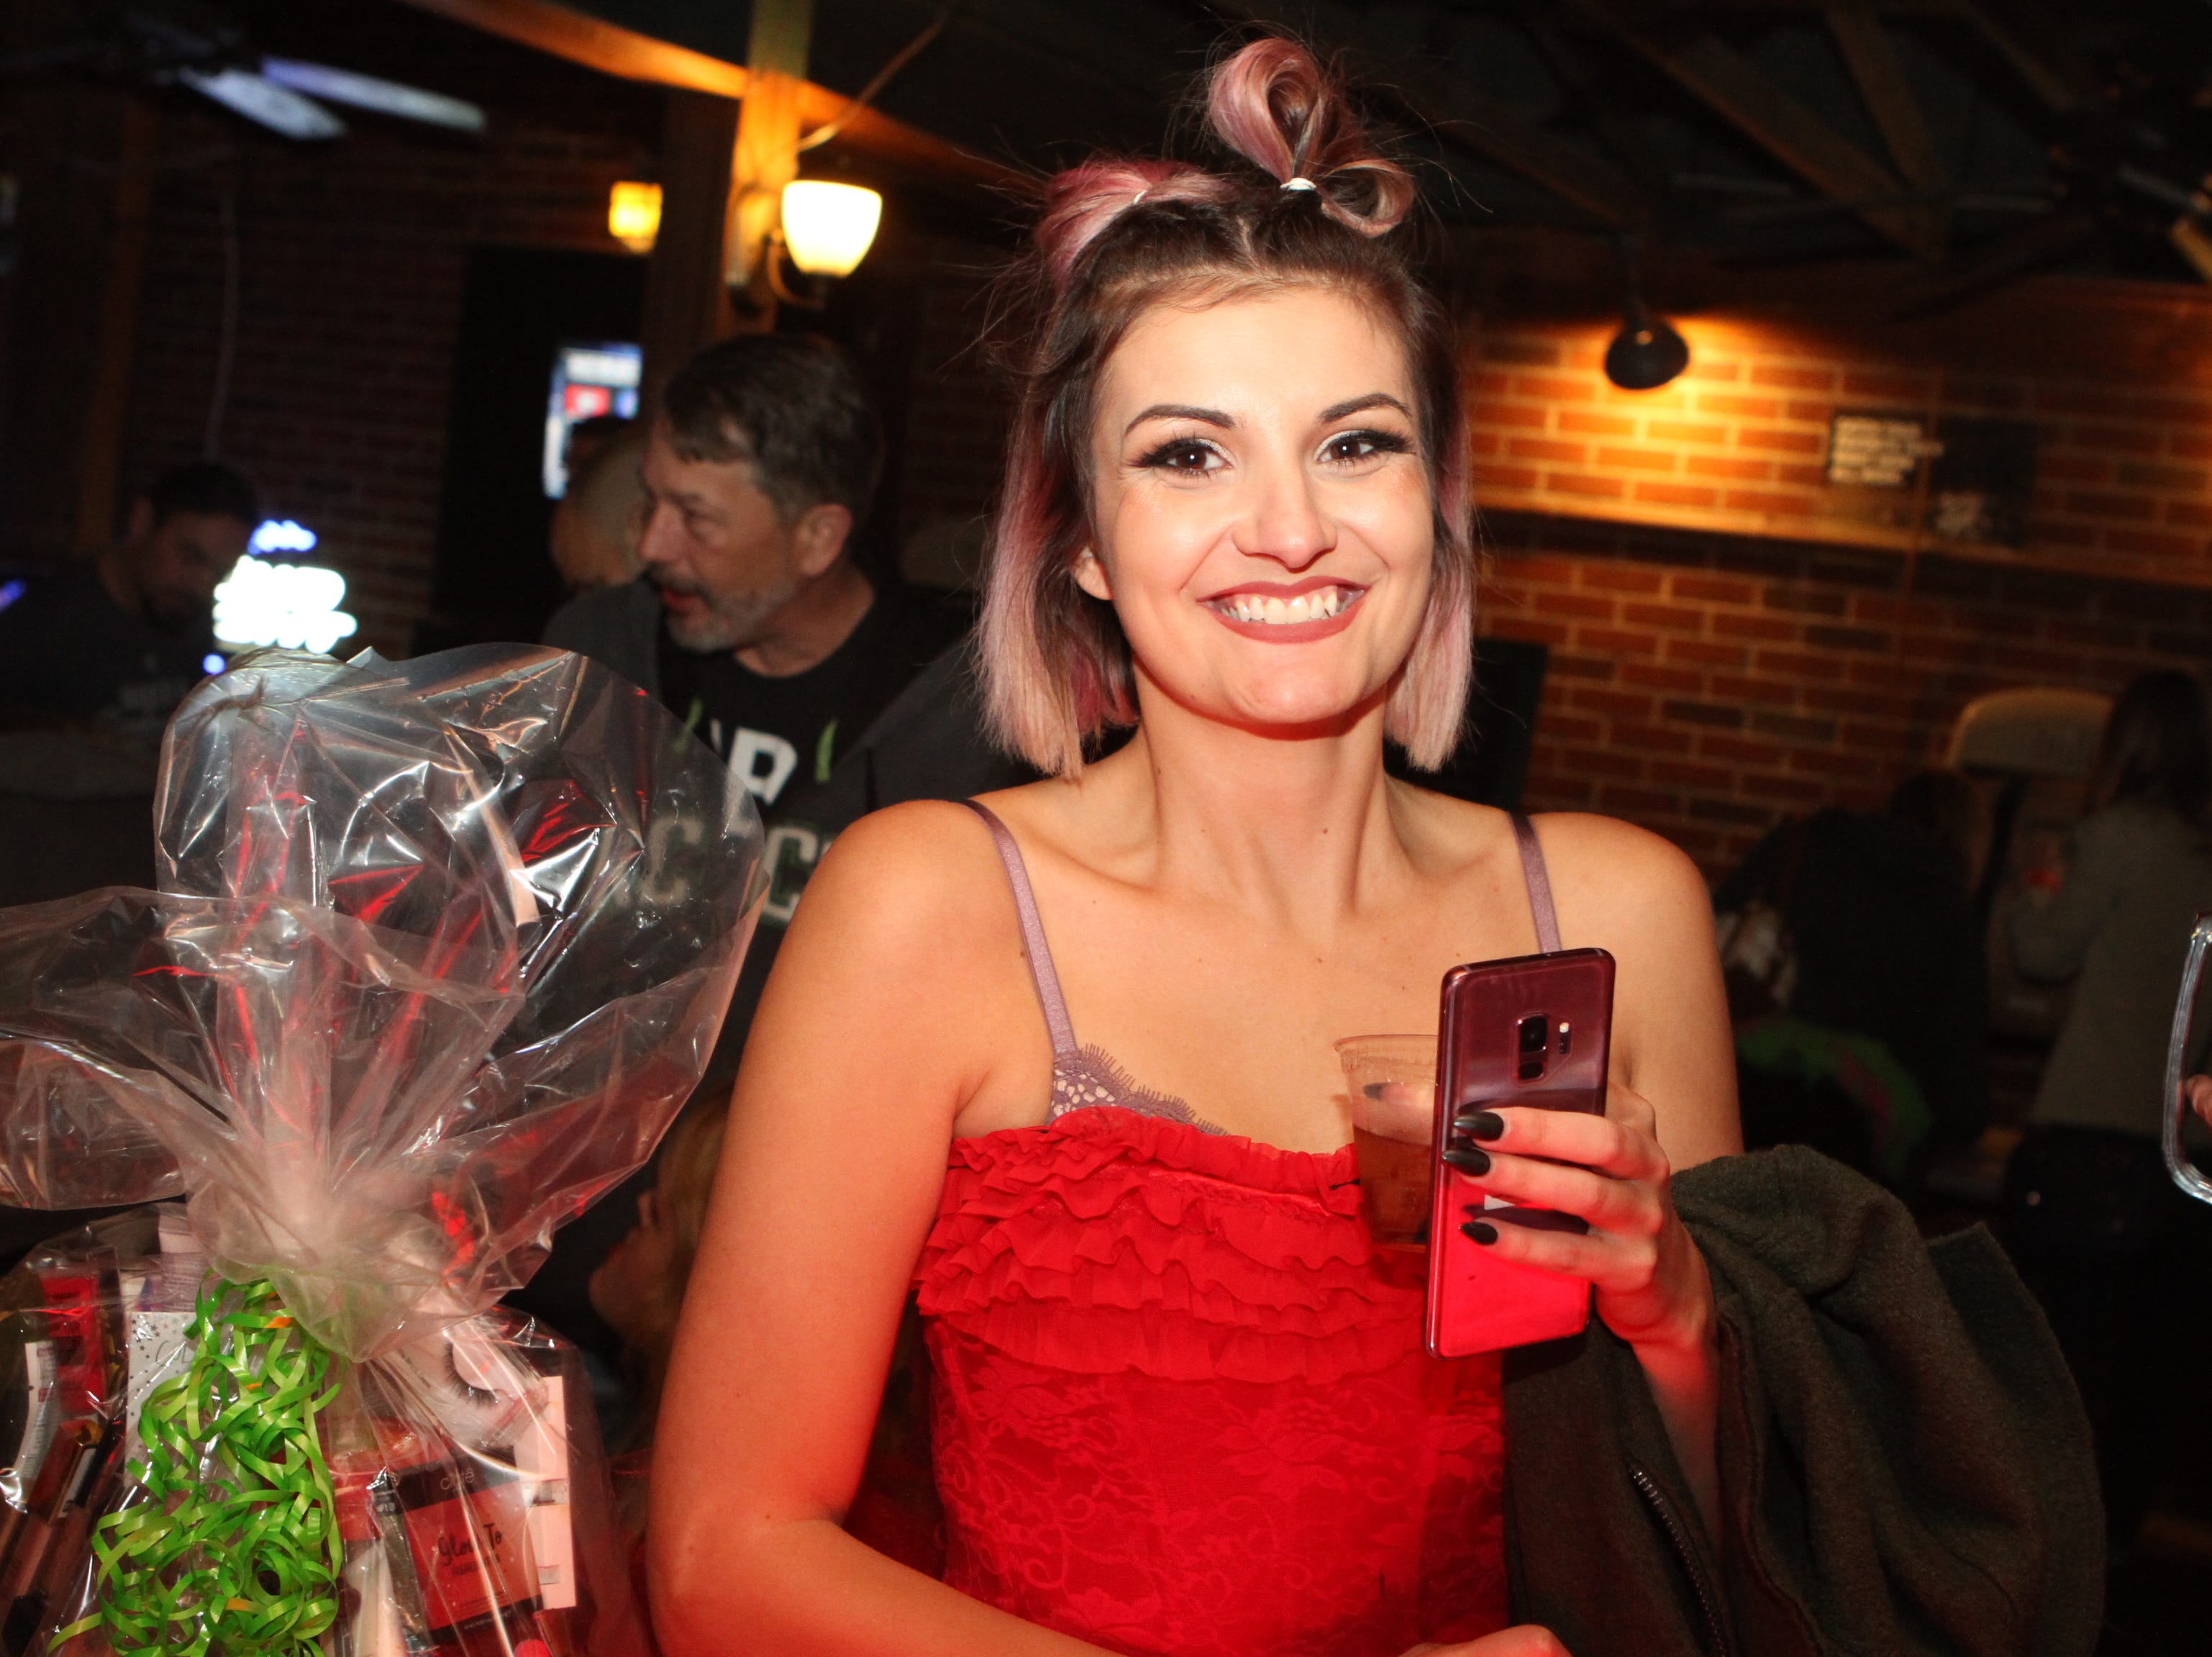 Clarksville Chive hosted Gettin' Stupid For Cupid 3 at O'Connor's on Saturday, October 20, 2018.